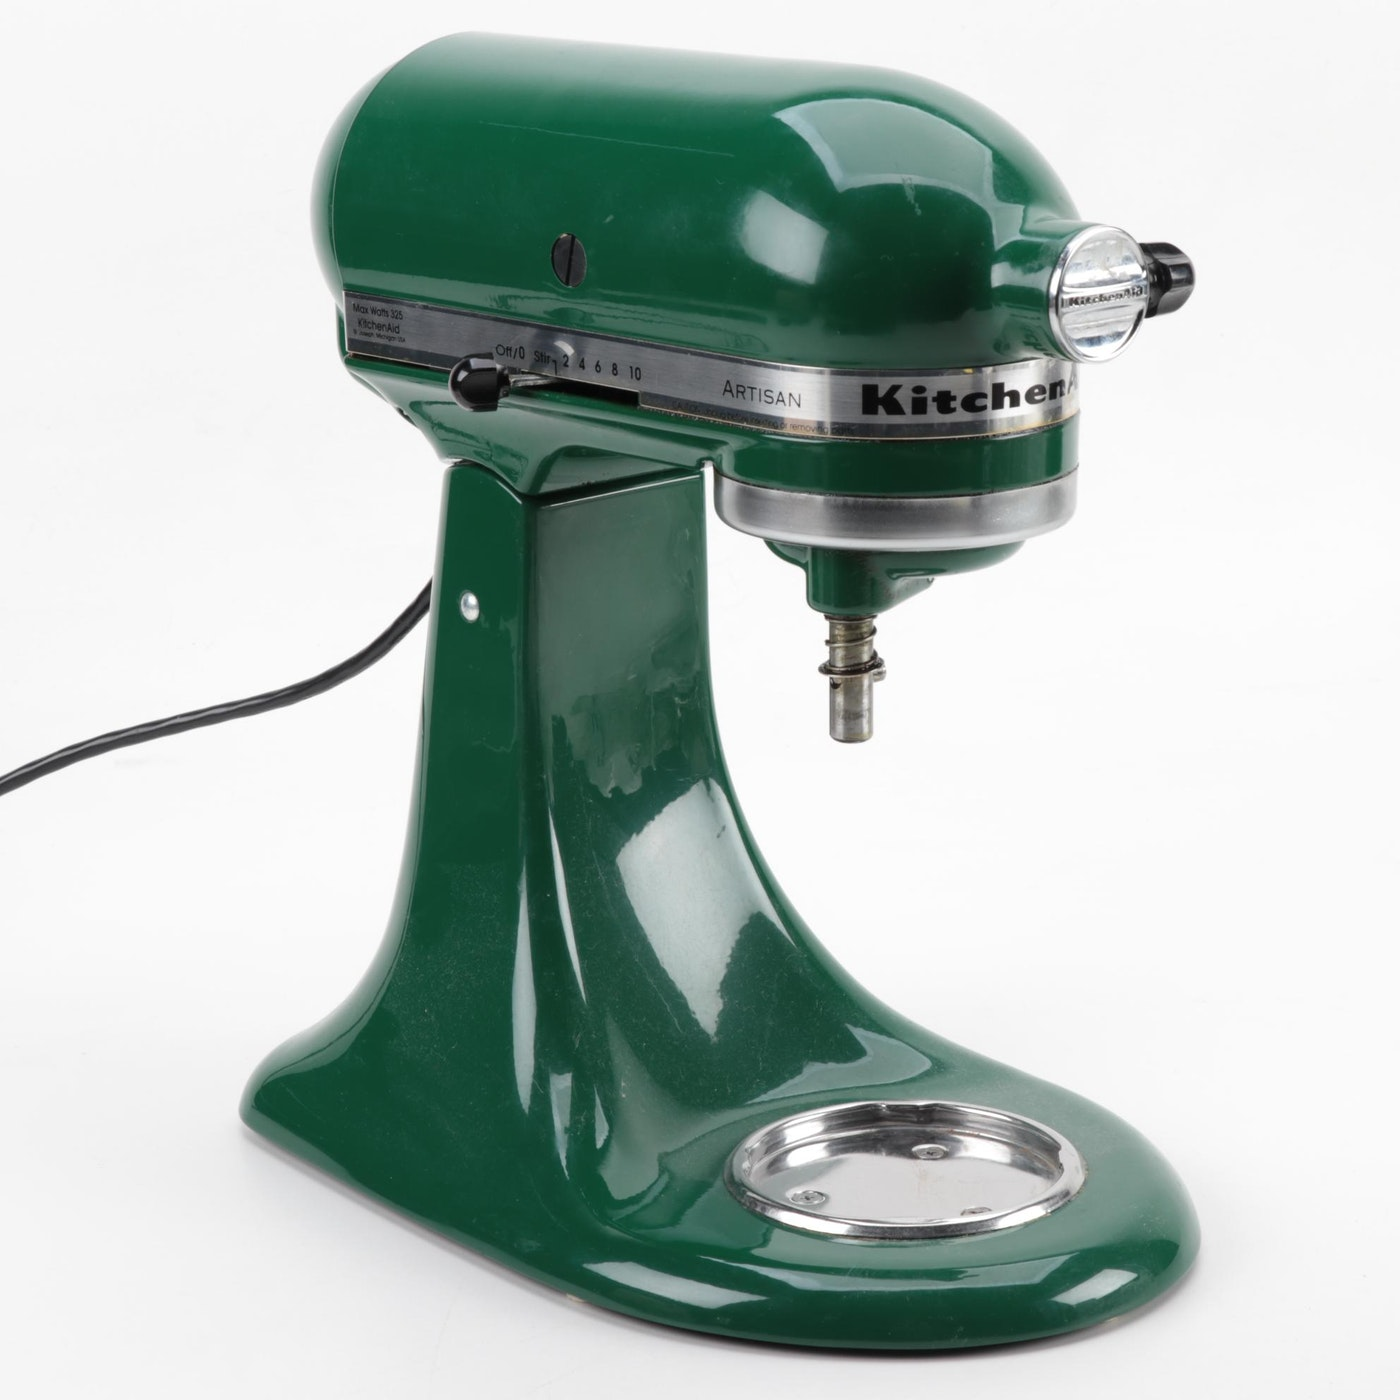 KitchenAid Artisan 5 qt. Stand Mixer in Empire Green with ...